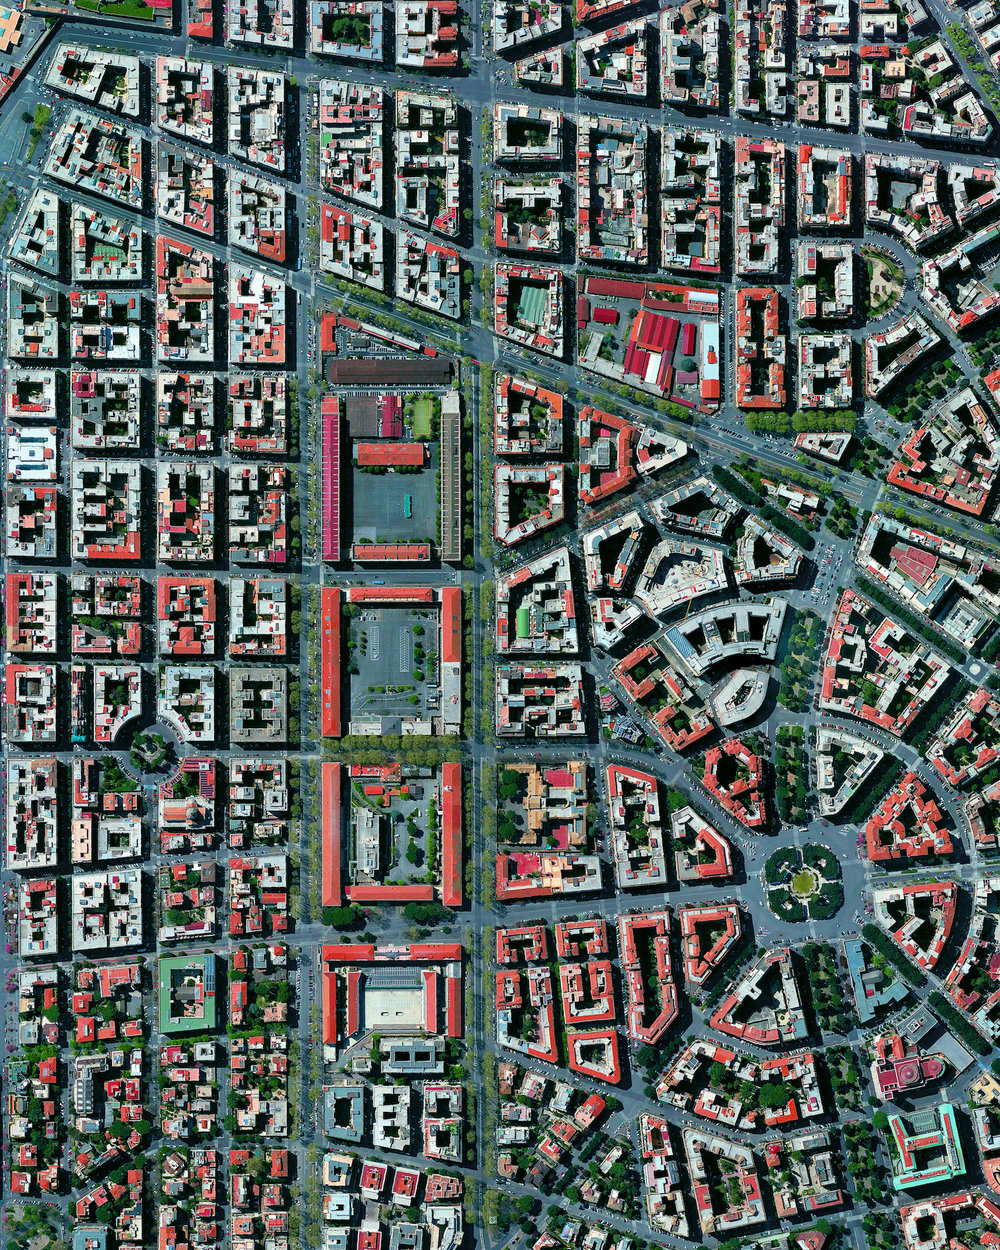 Prati is a neighborhood located in center of Rome, Italy. The area borders the Vatican and contains the Via Cola di Rienzo, one of the most famous shopping streets in the entire city.  41.9111647, 12.460427  Source imagery: DigitalGlobe